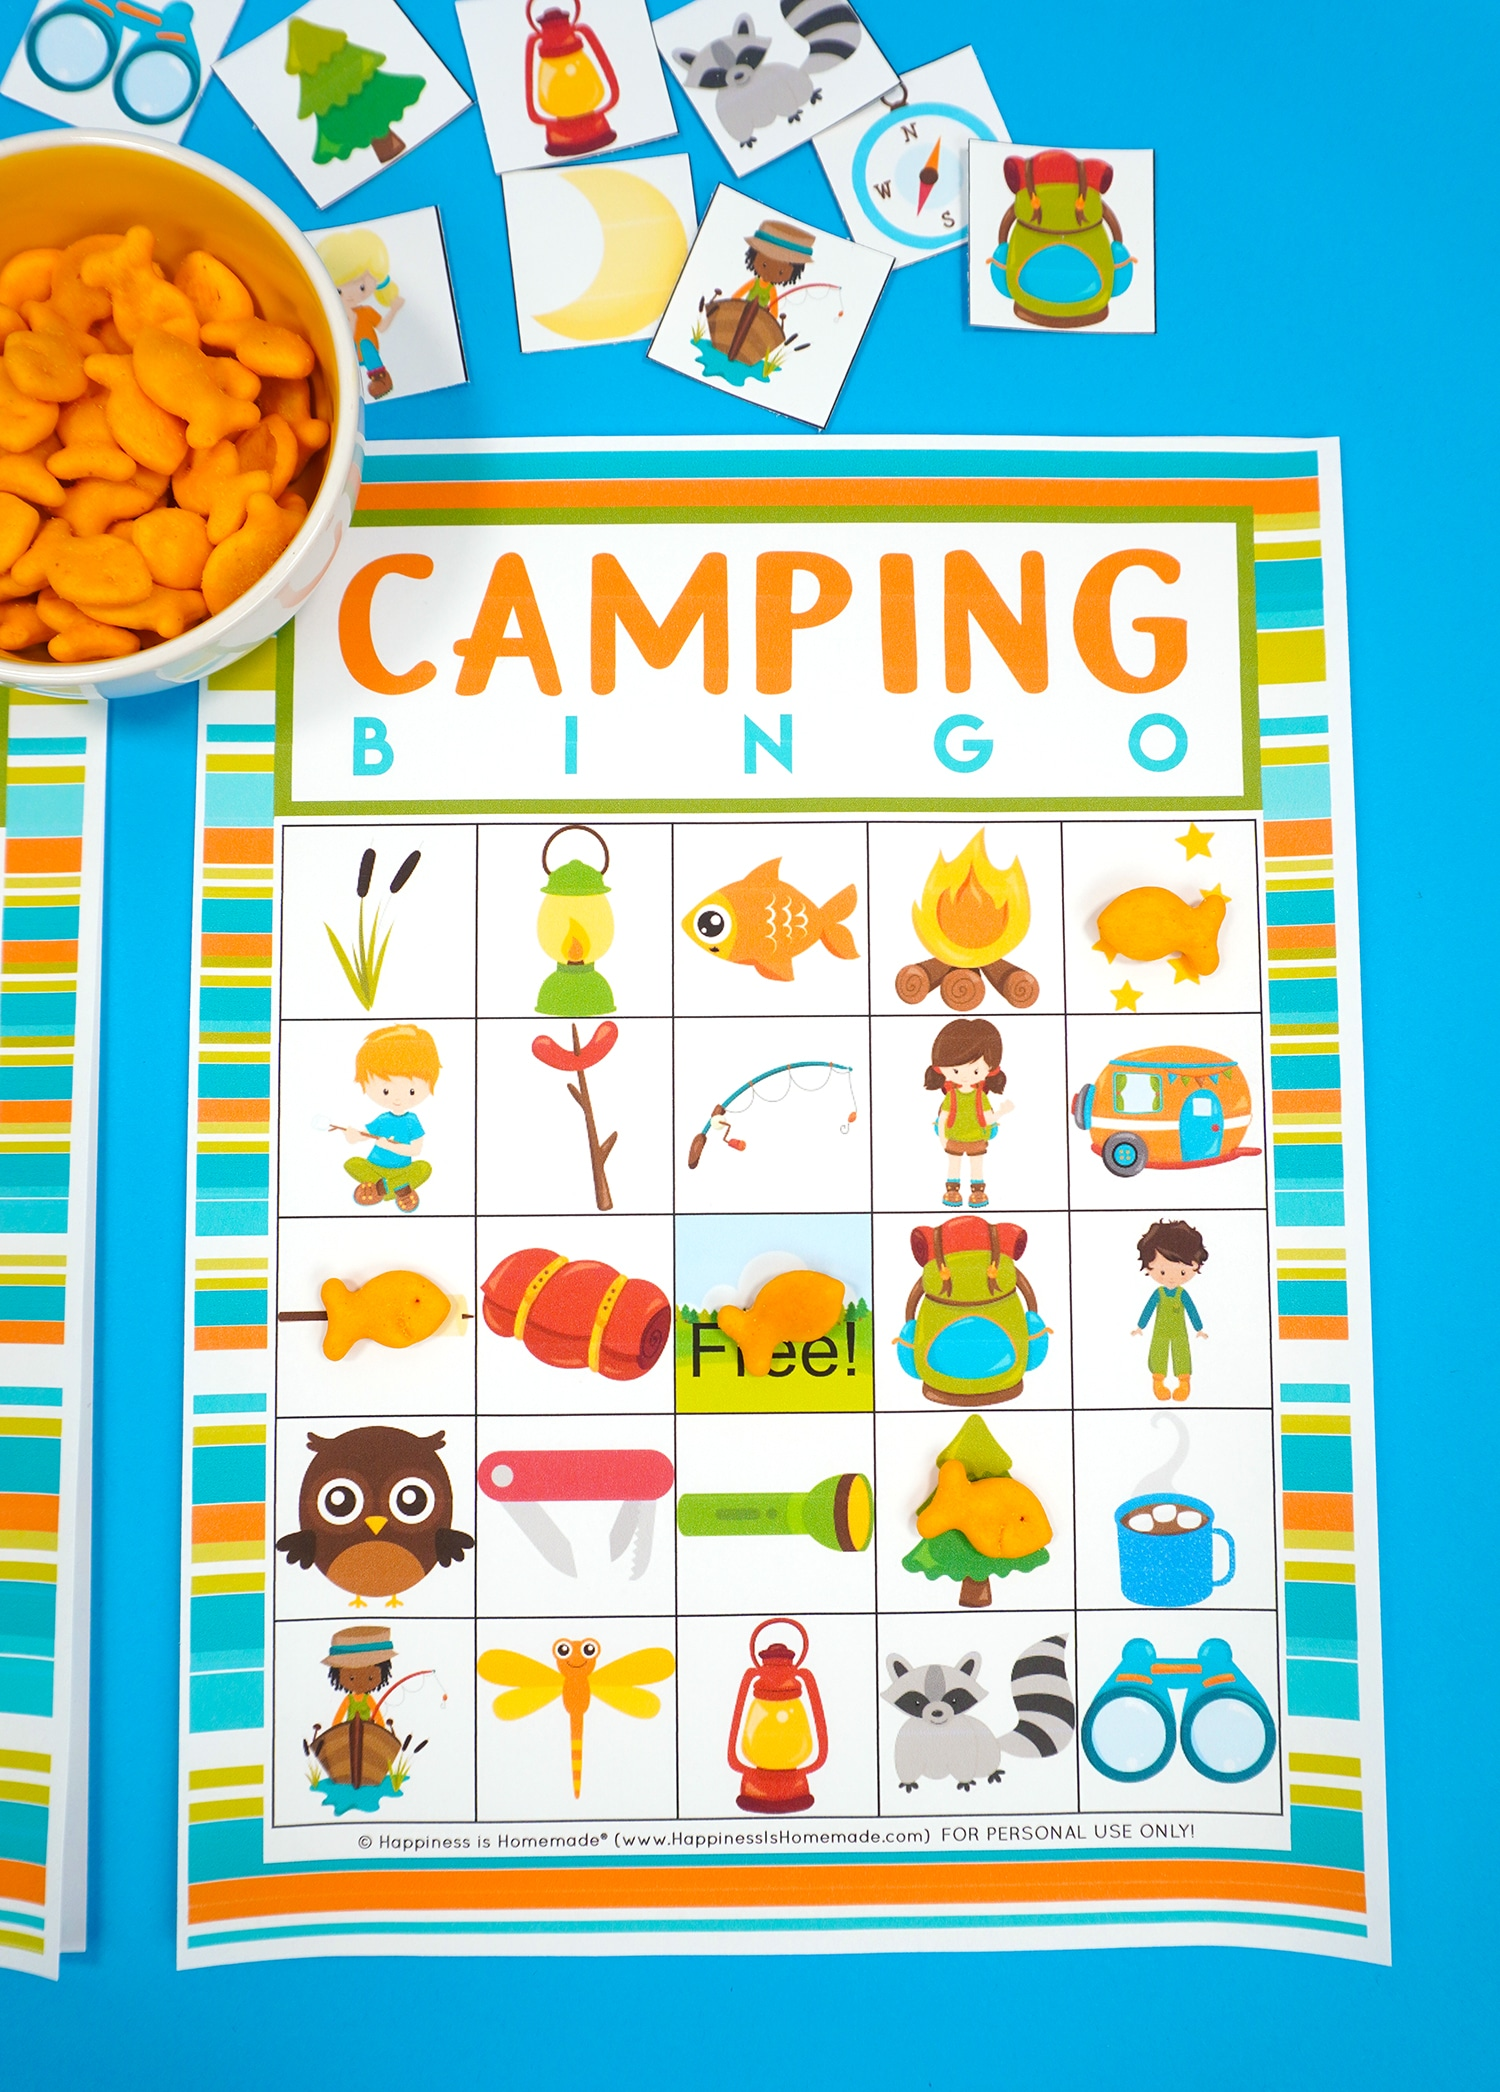 Camping Bingo Printable game card on a blue background with scattered calling cards and bowl of Goldfish crackers for game markers